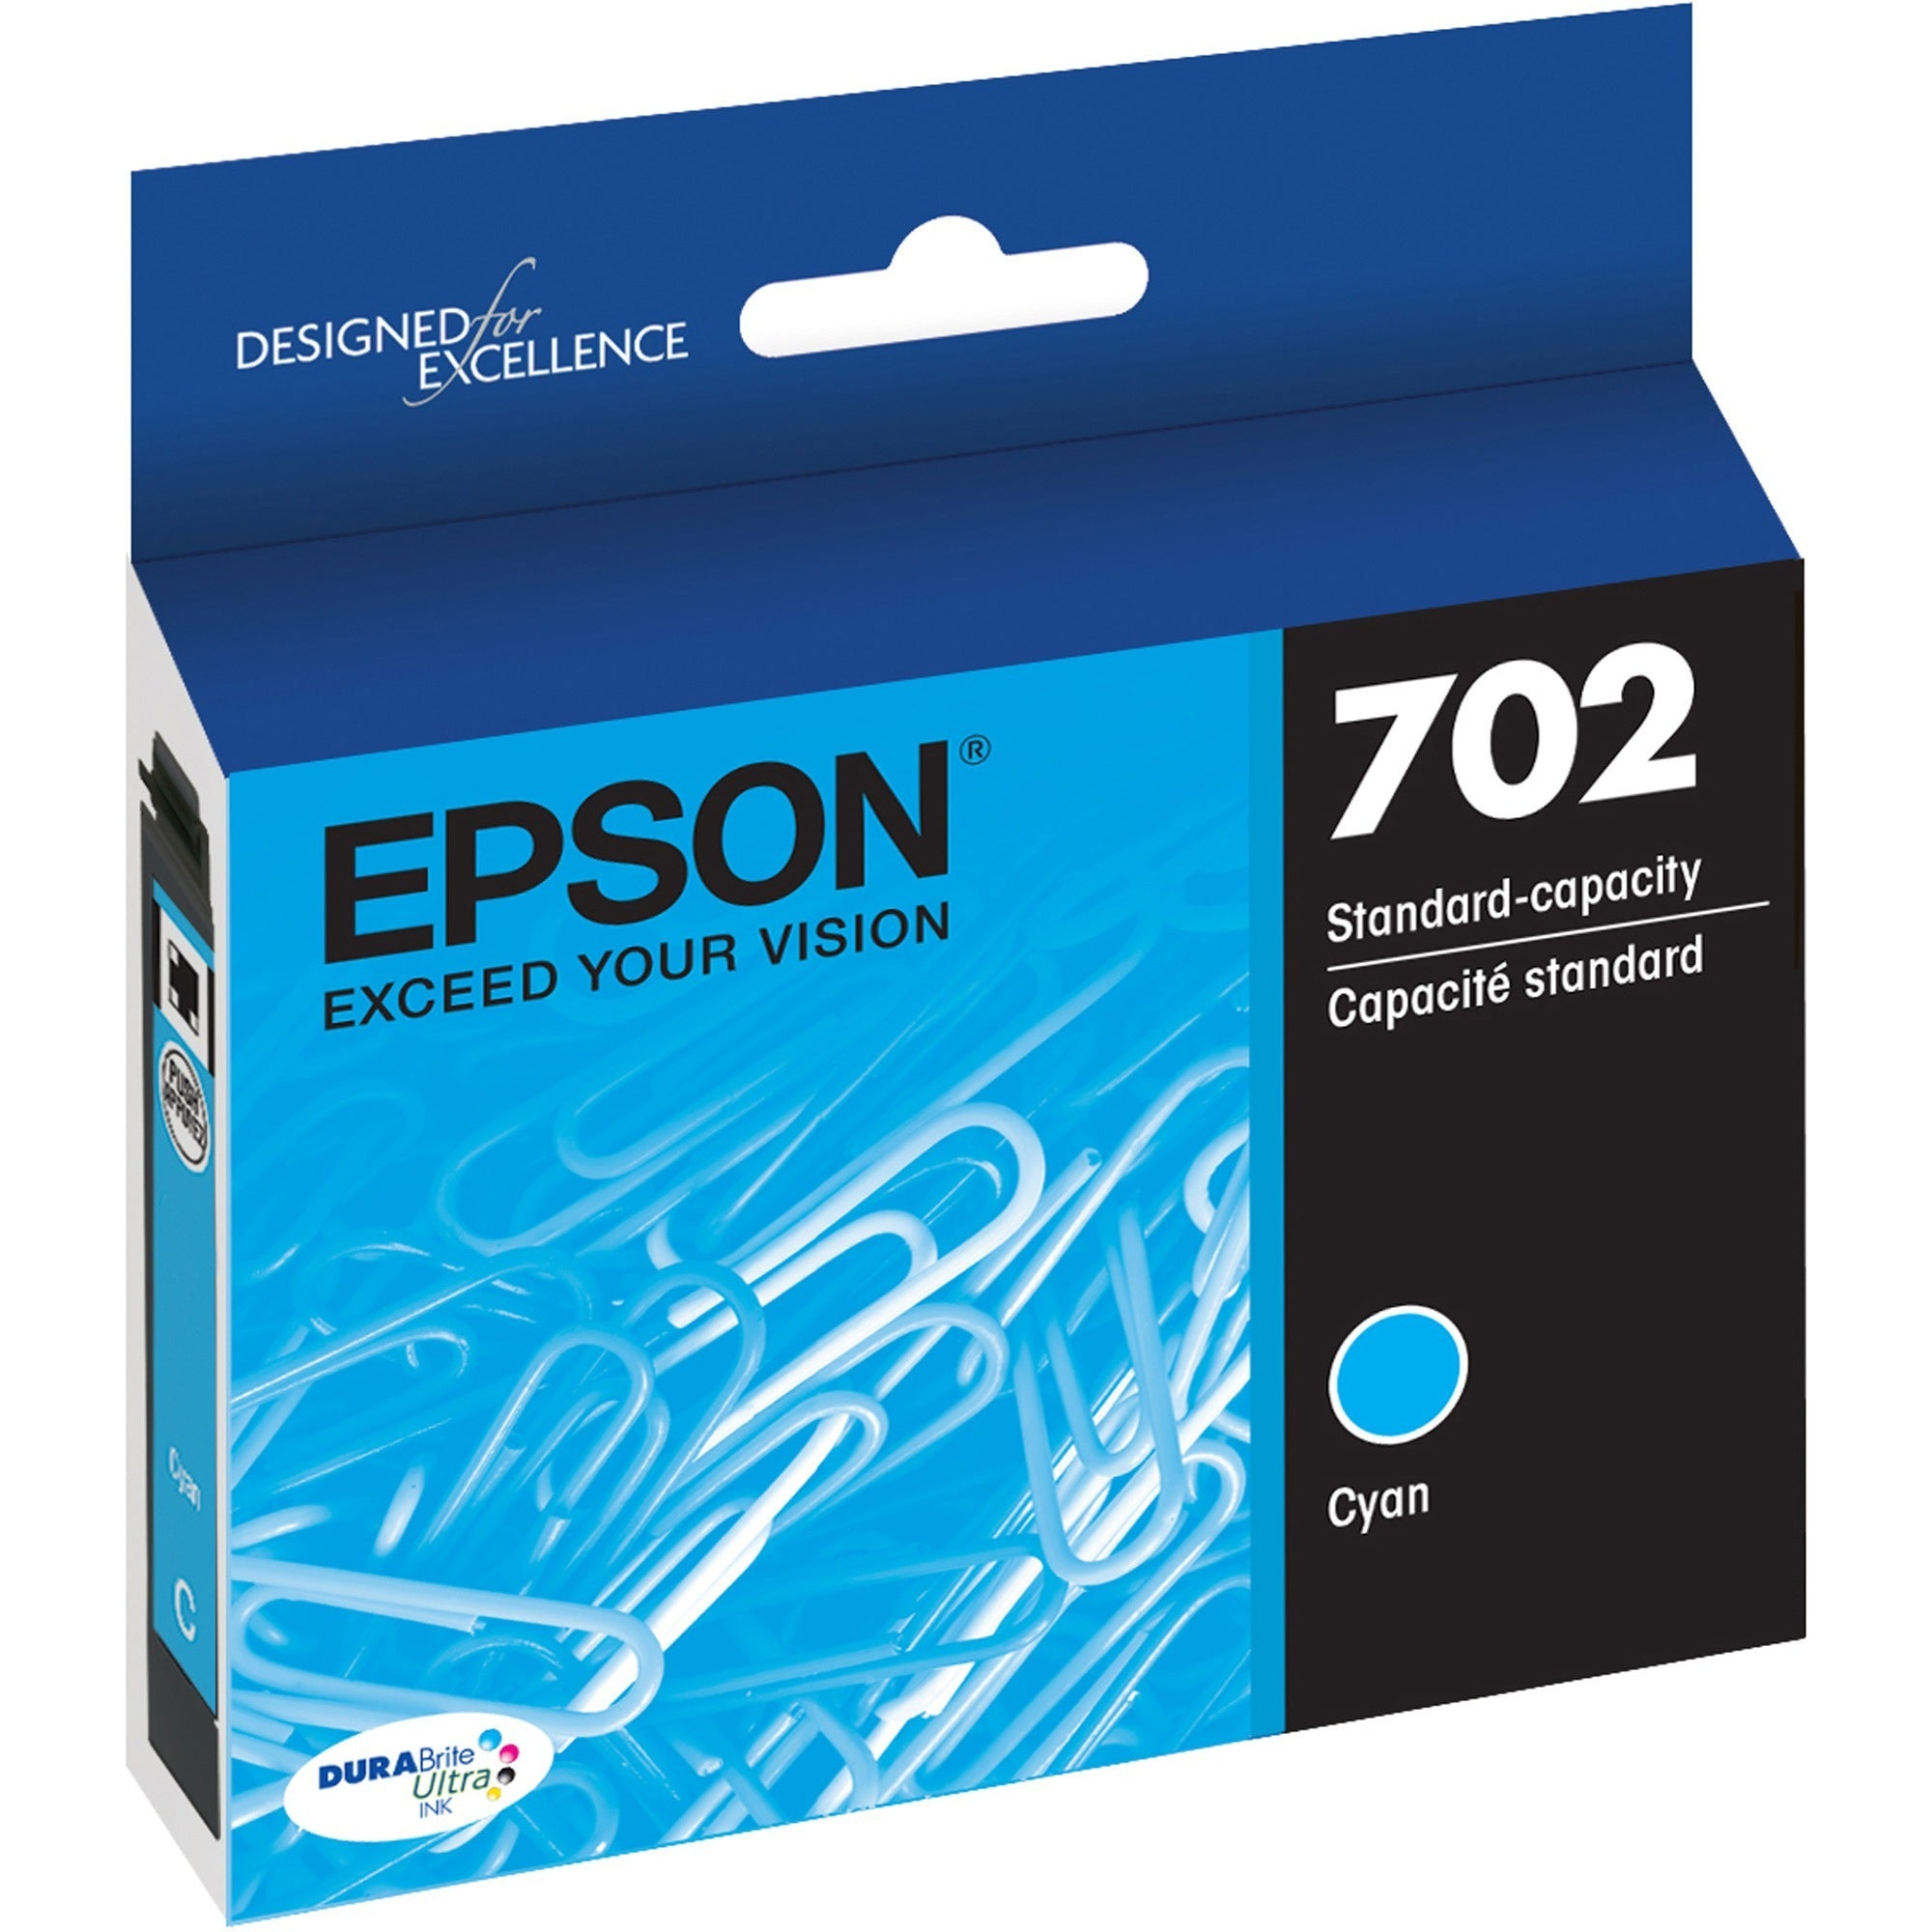 Epson DURABrite Ultra T702 Original Ink Cartridge - Cyan SKU: EPS T702220S